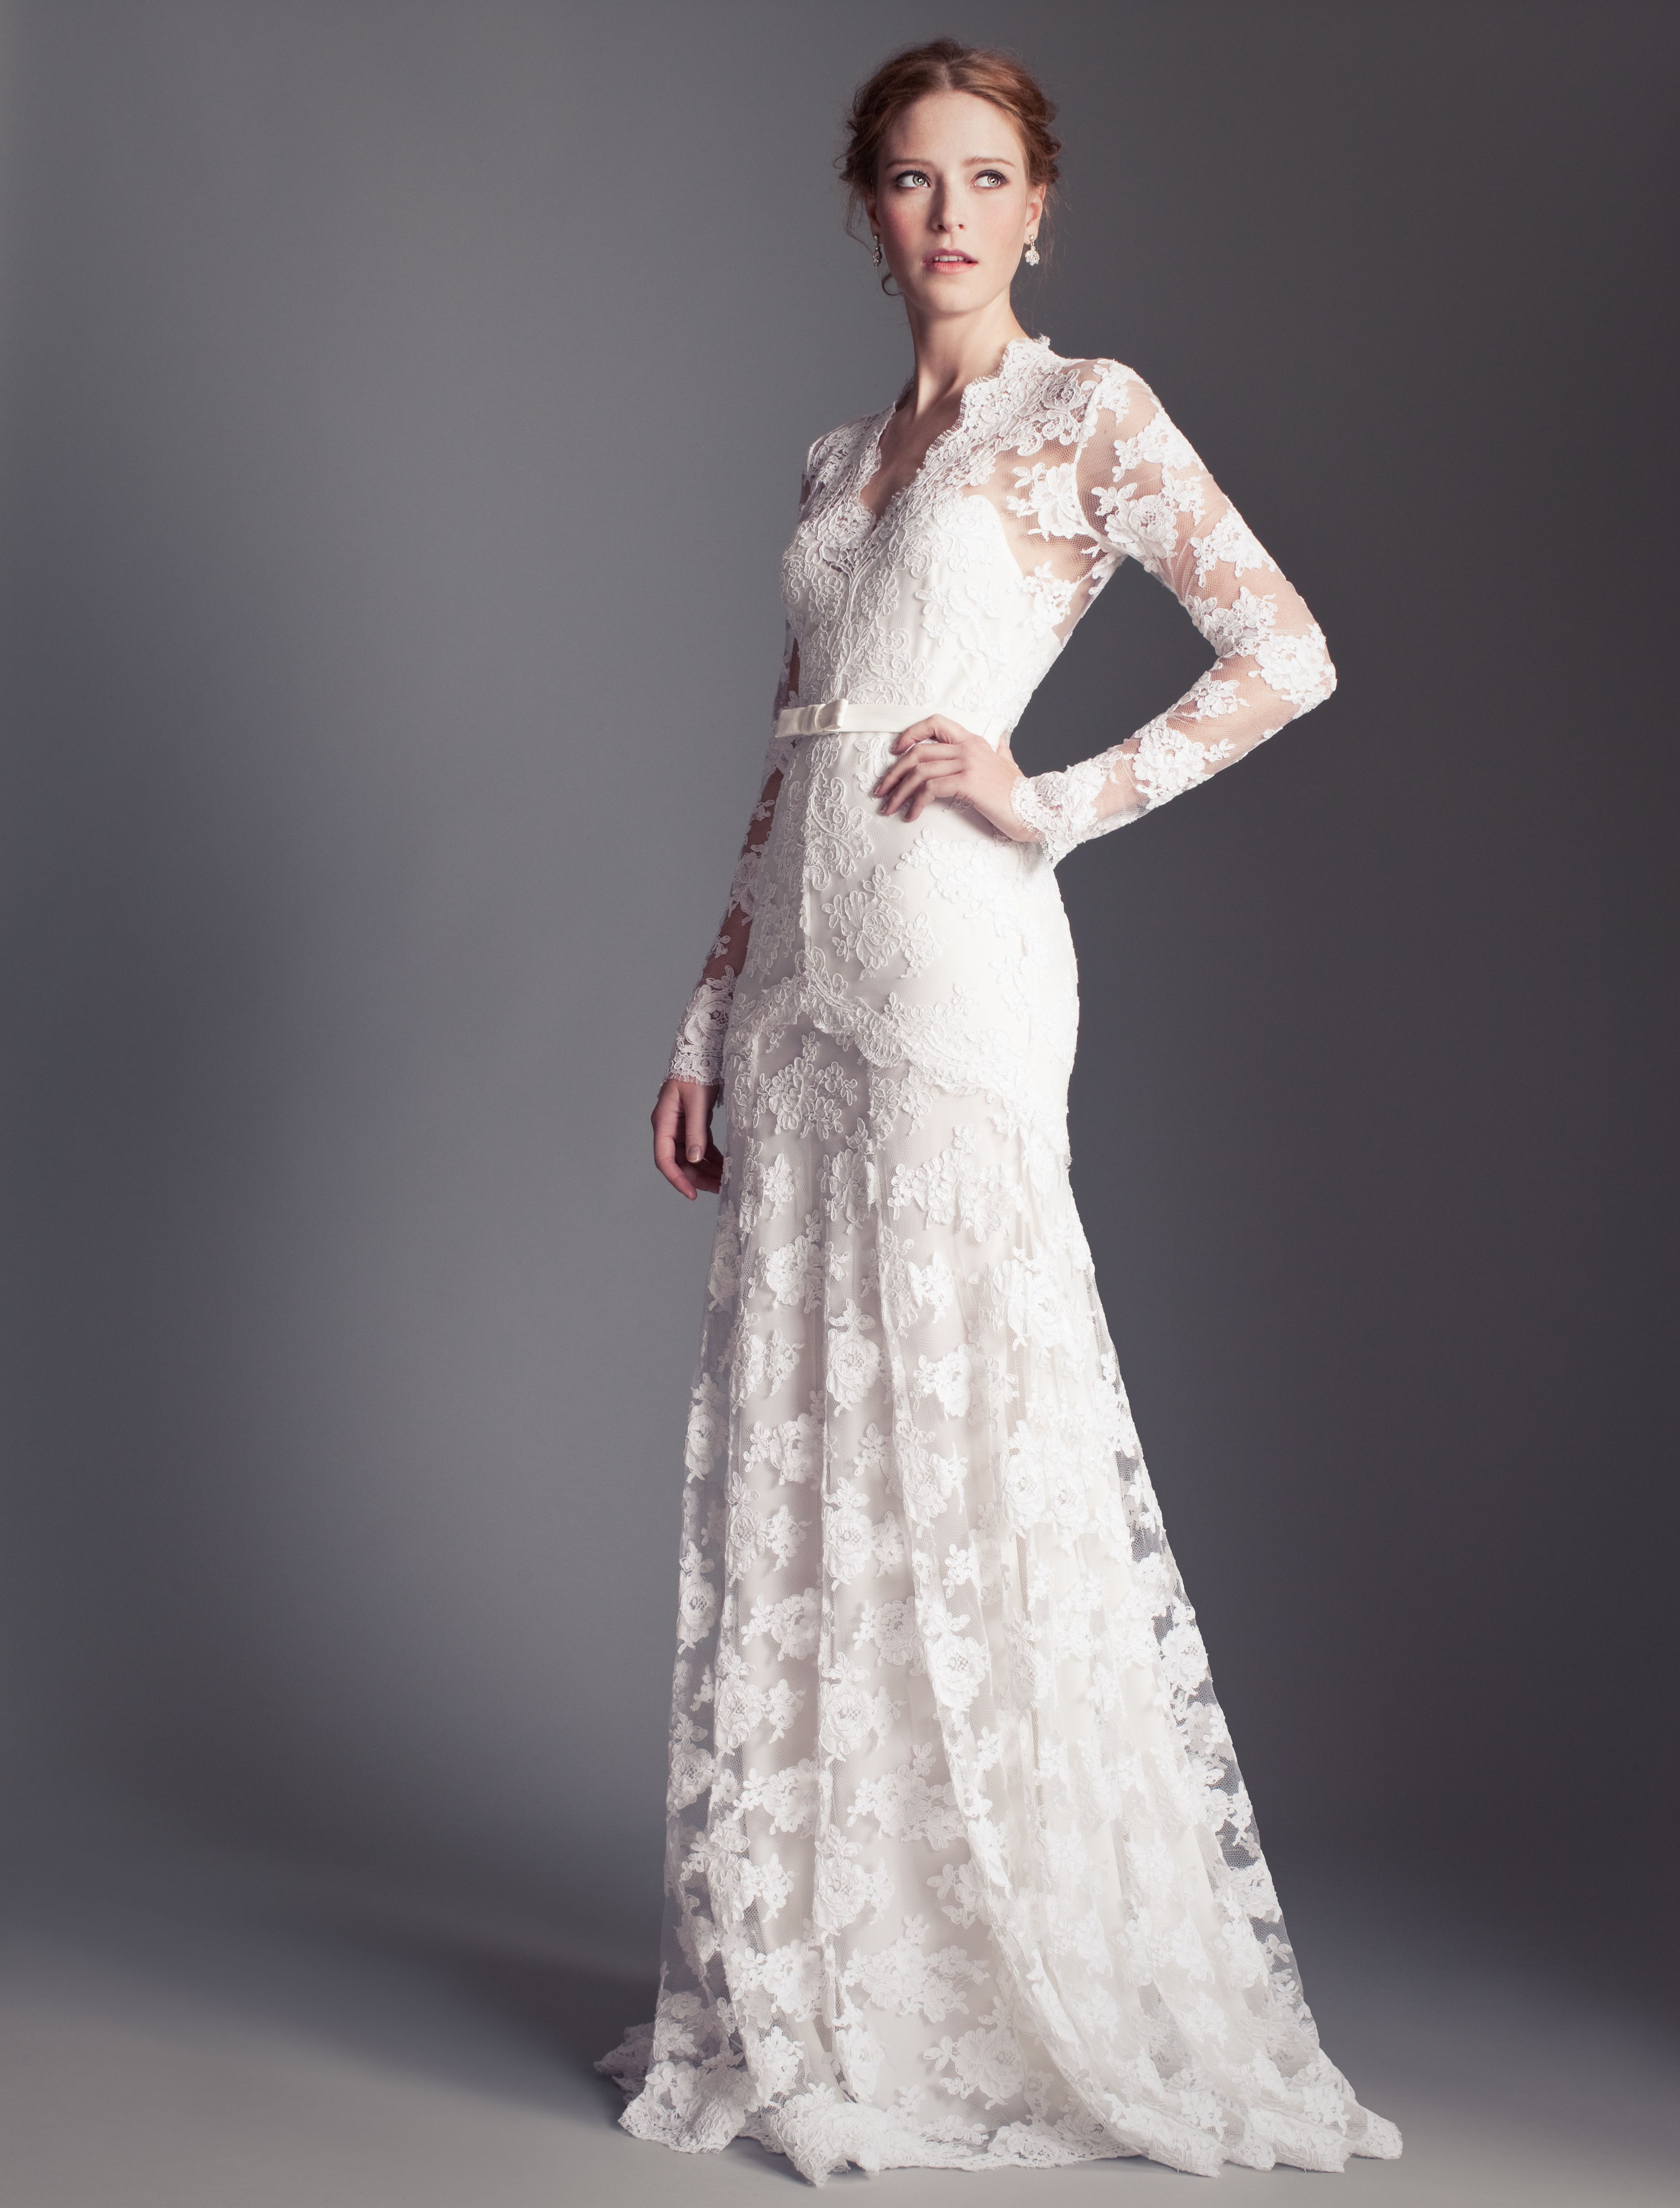 Guinevere Dress Florence Collection